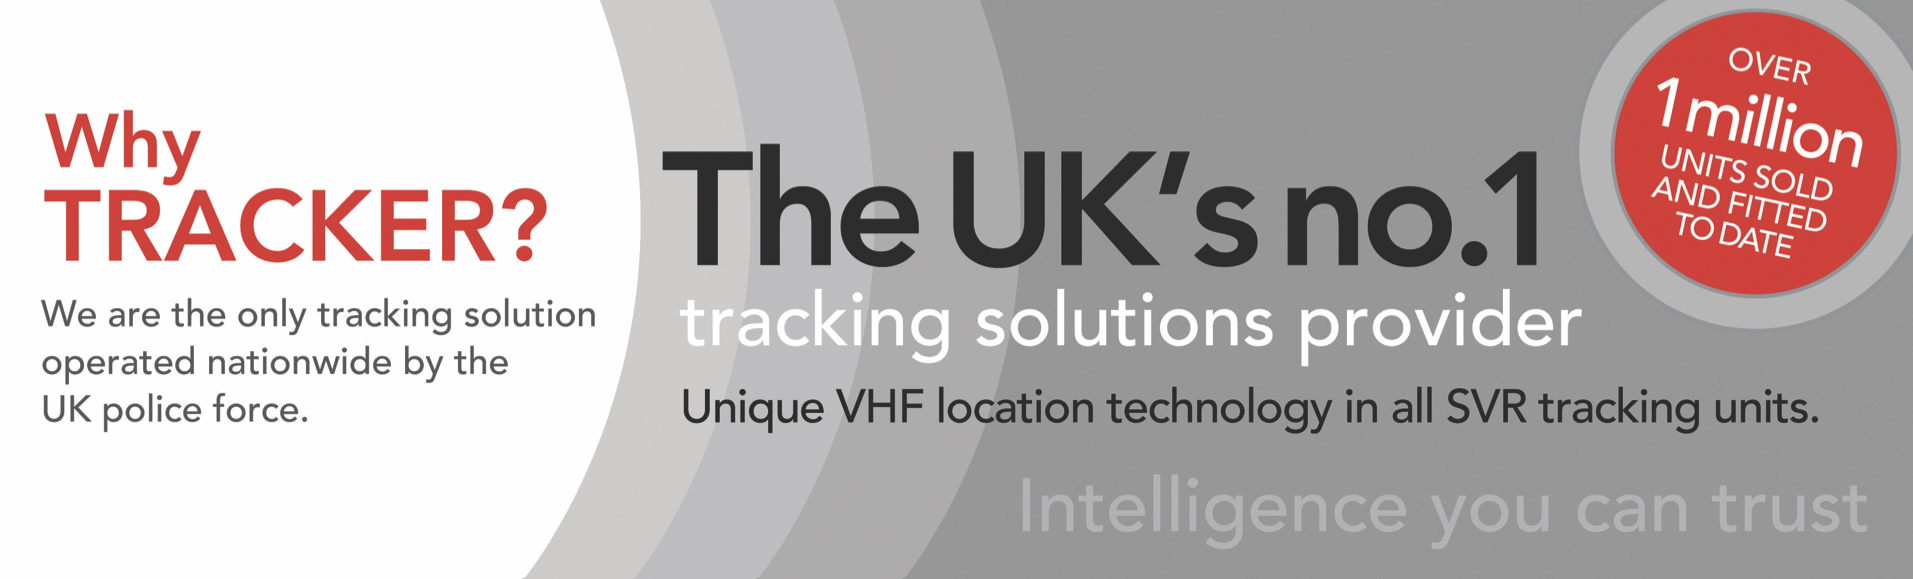 Tracker banner - the UK's no 1 stolen vehicle tracking solutions provider